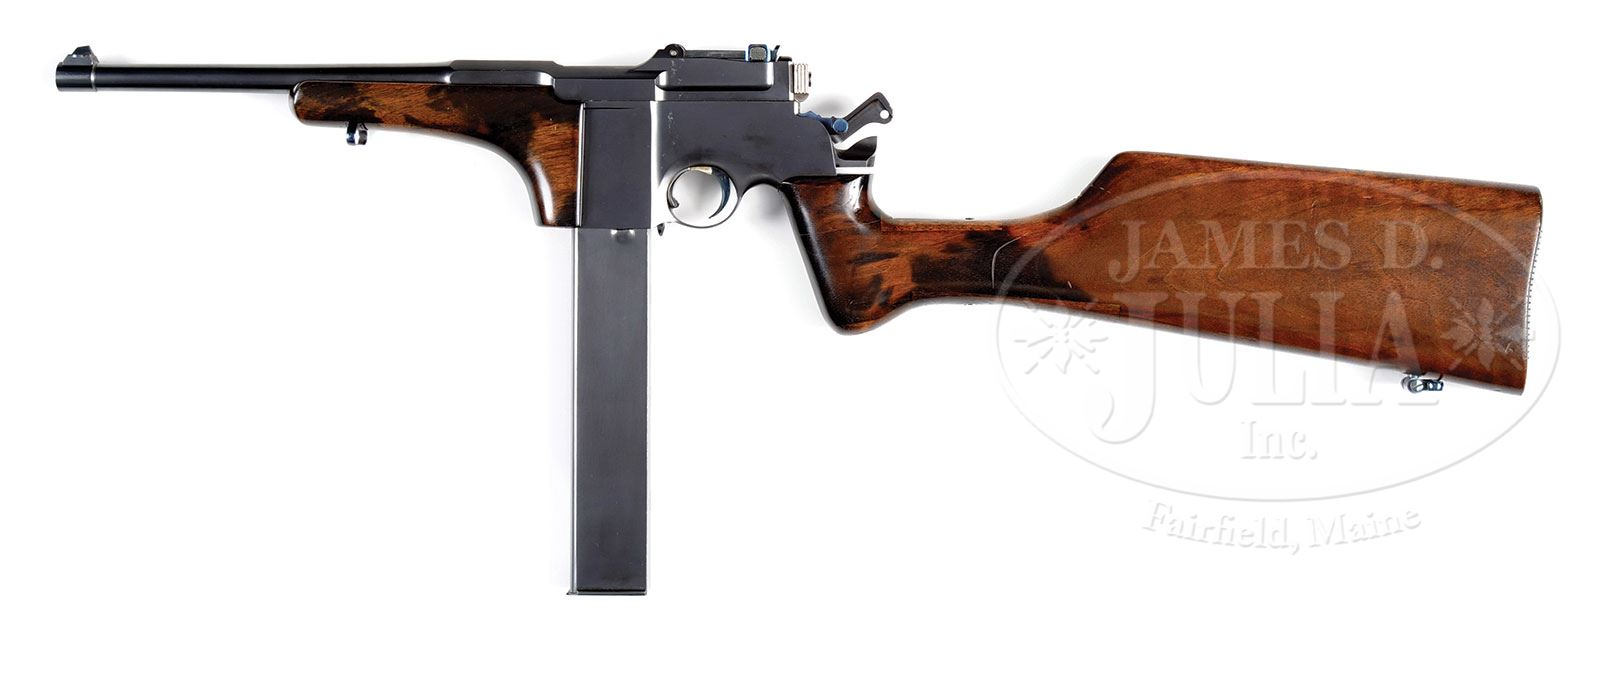 EXTRAORDINARY MAUSER M1917 TRENCH CARBINE WITH 40-SHOT DETACHABLE